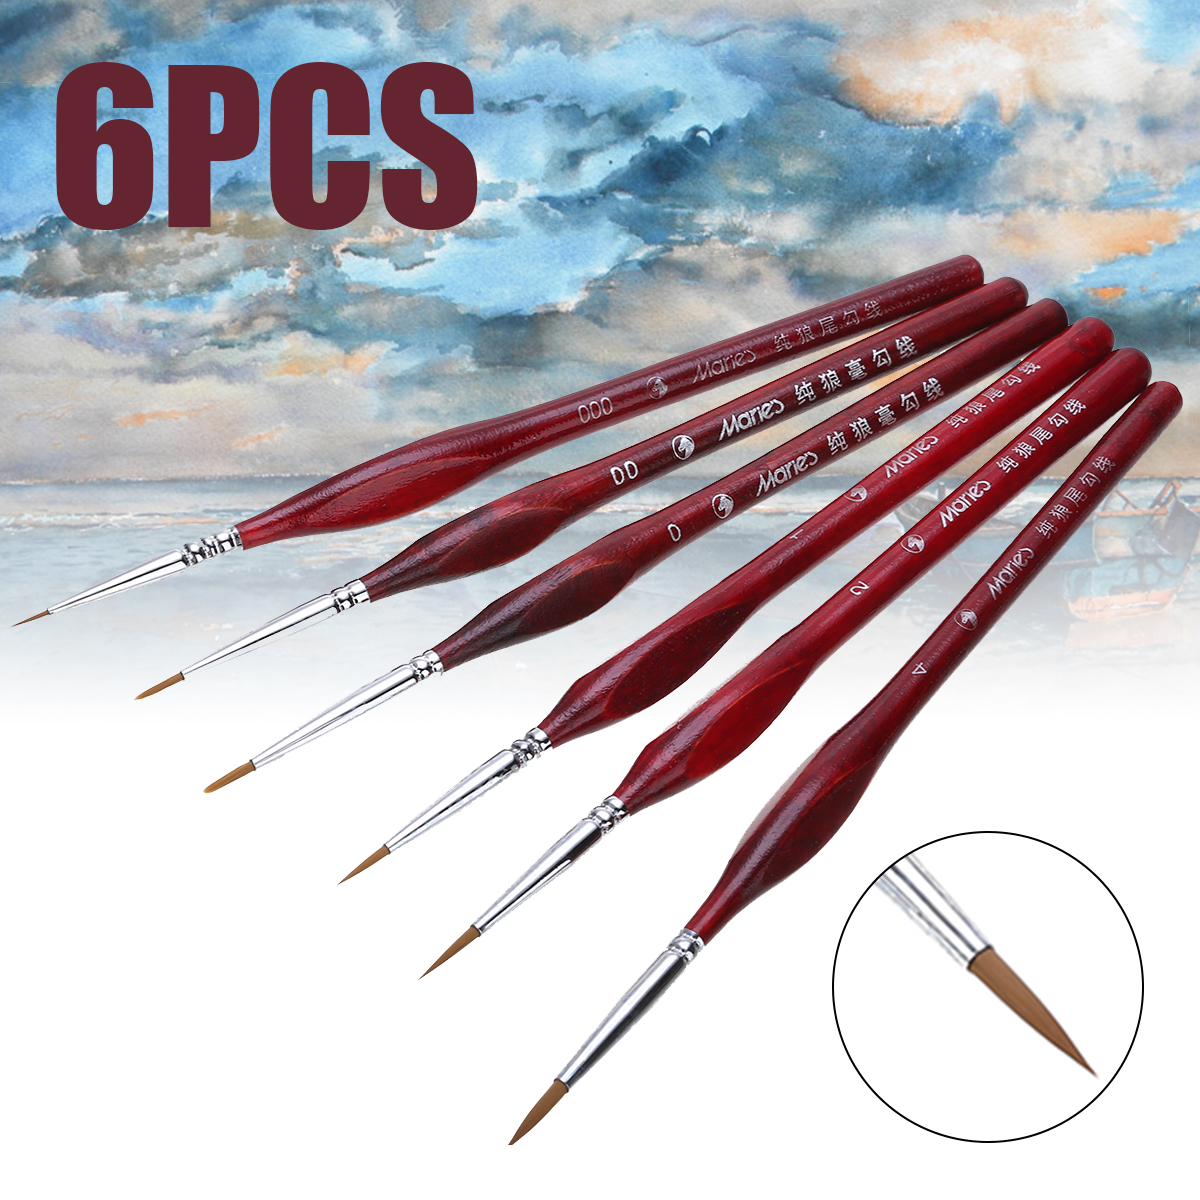 6Pcs Paint Brush Set Extra Fine Detail Paint Brushes Artist Miniatures Model Maker Tool Set For Oil Painting Gouache Painting